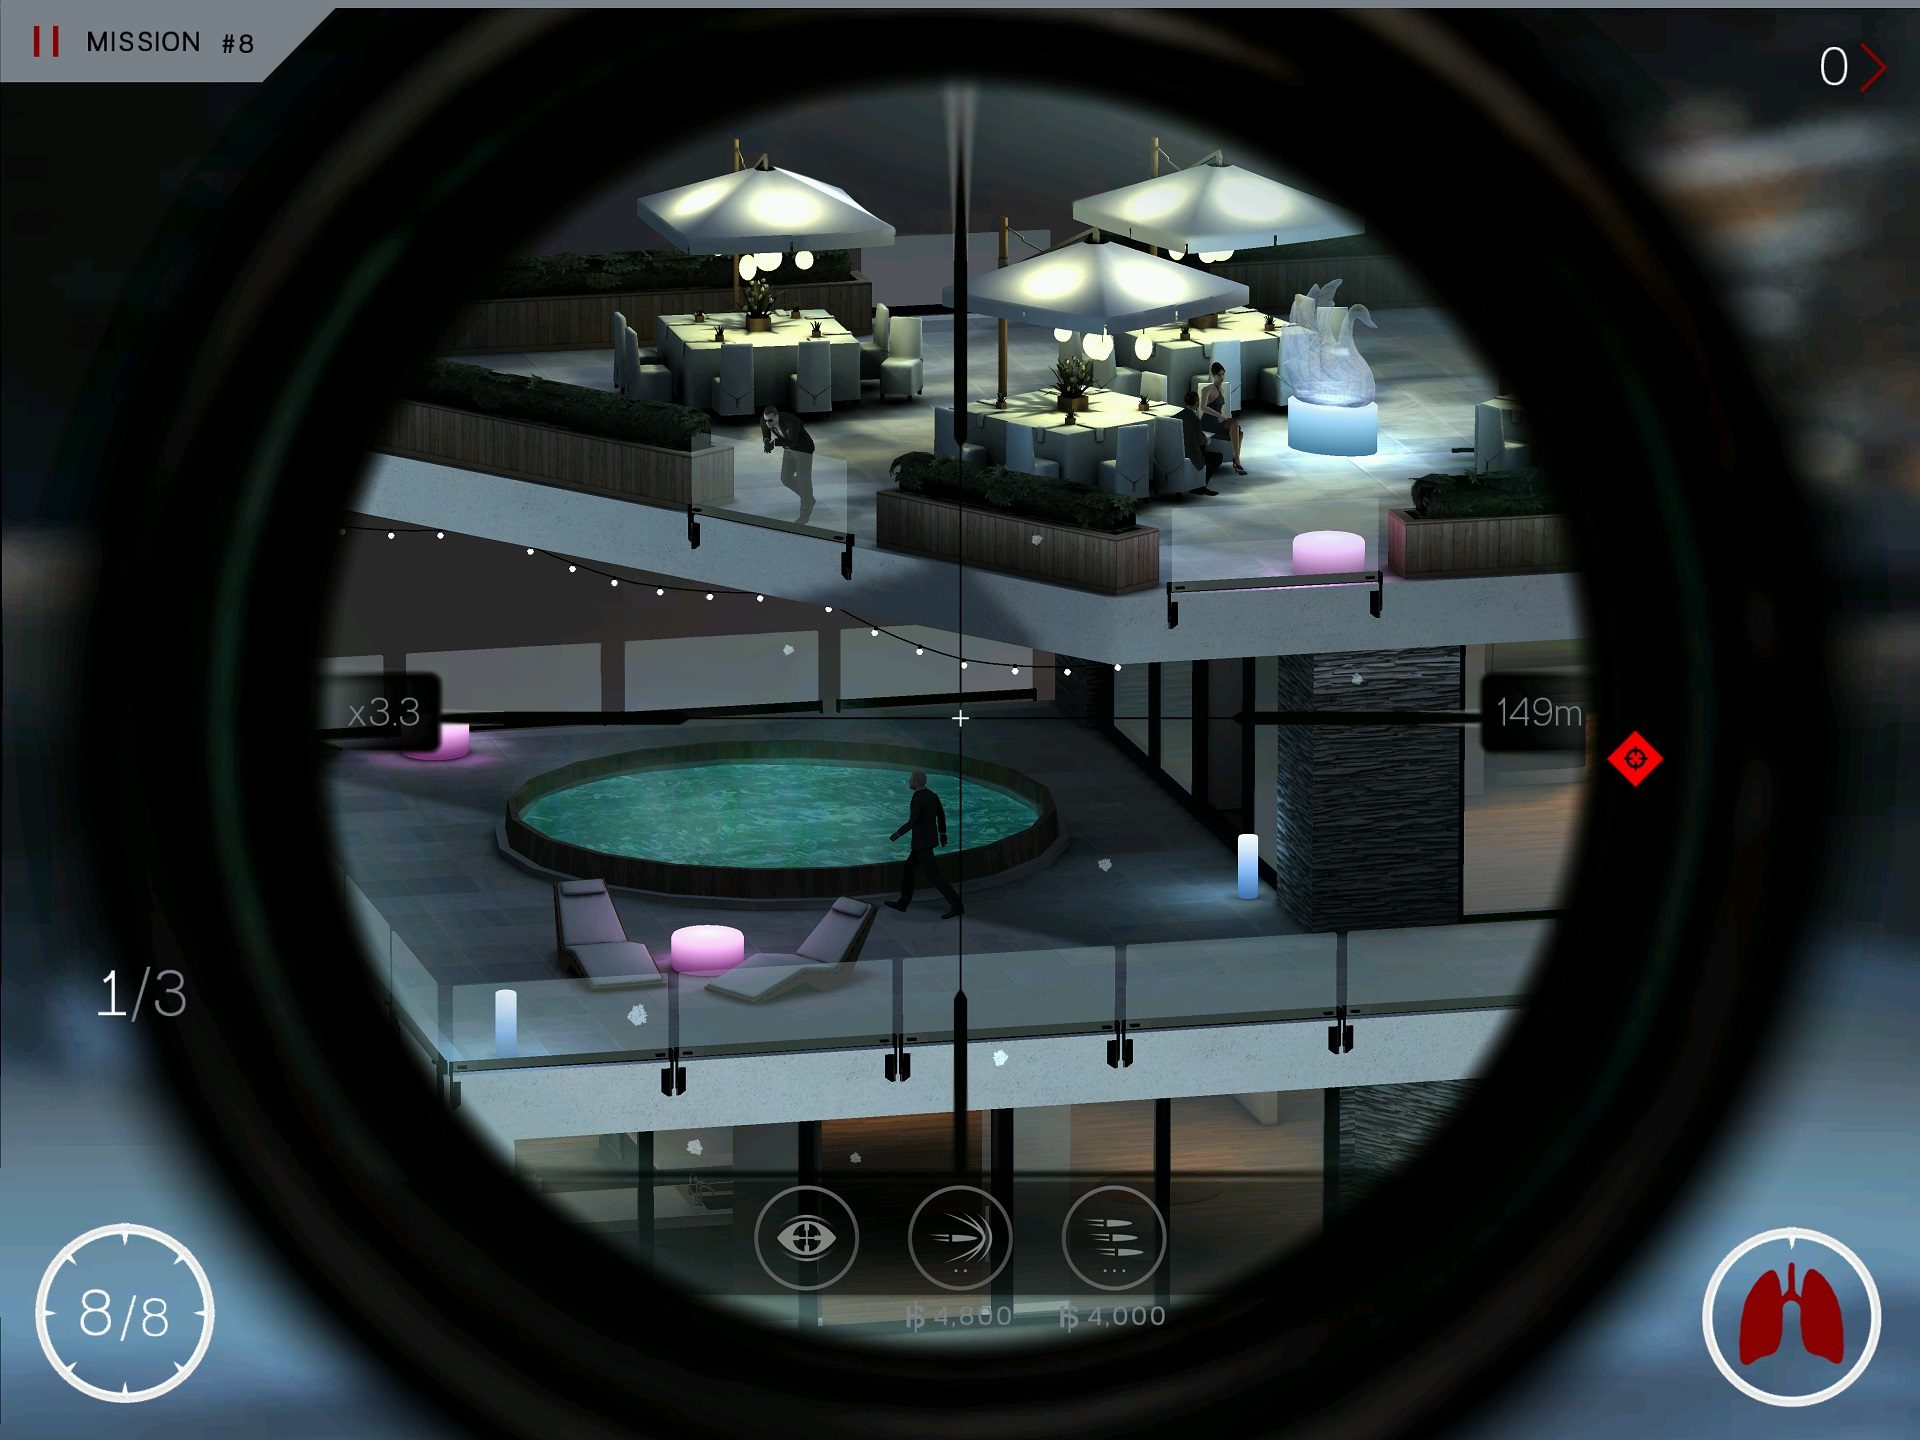 Hitman: Sniper hands-on impressions: itchy trigger finger